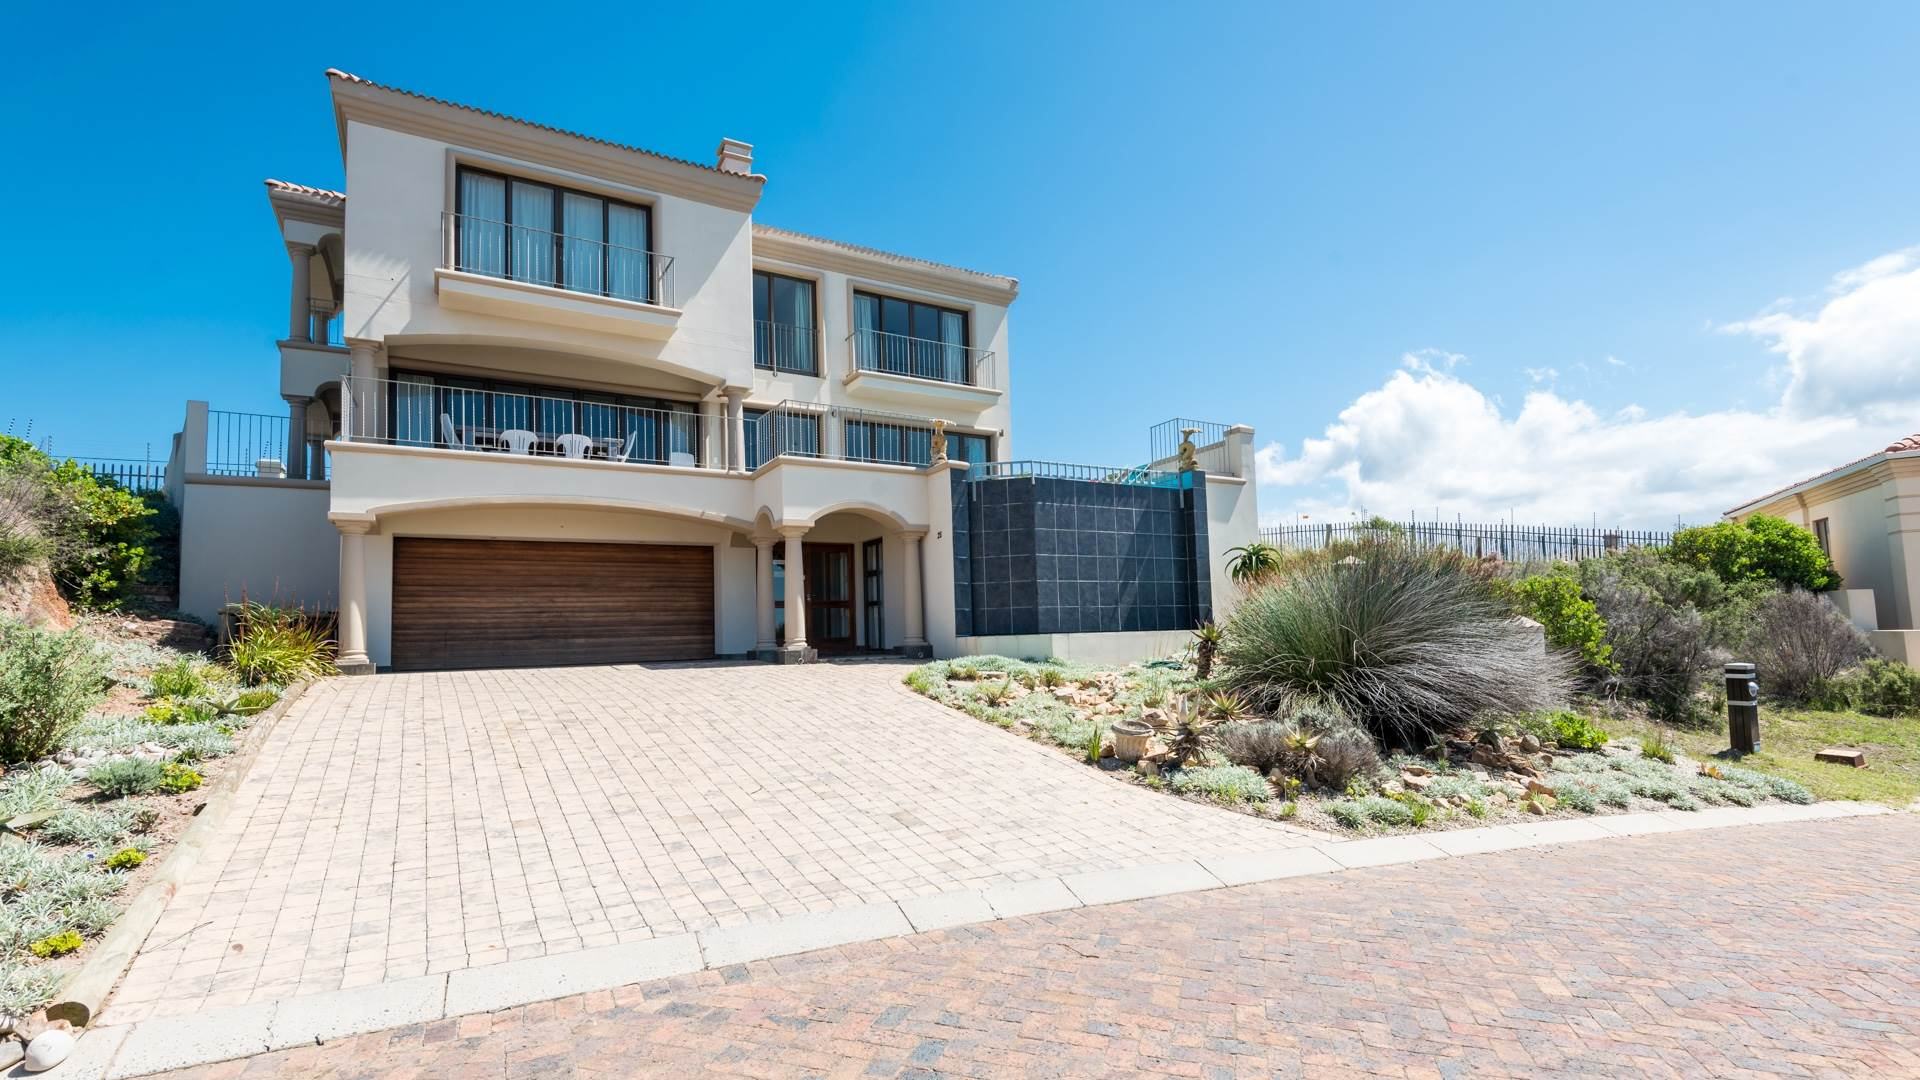 4 BedroomHouse For Sale In Whale Rock